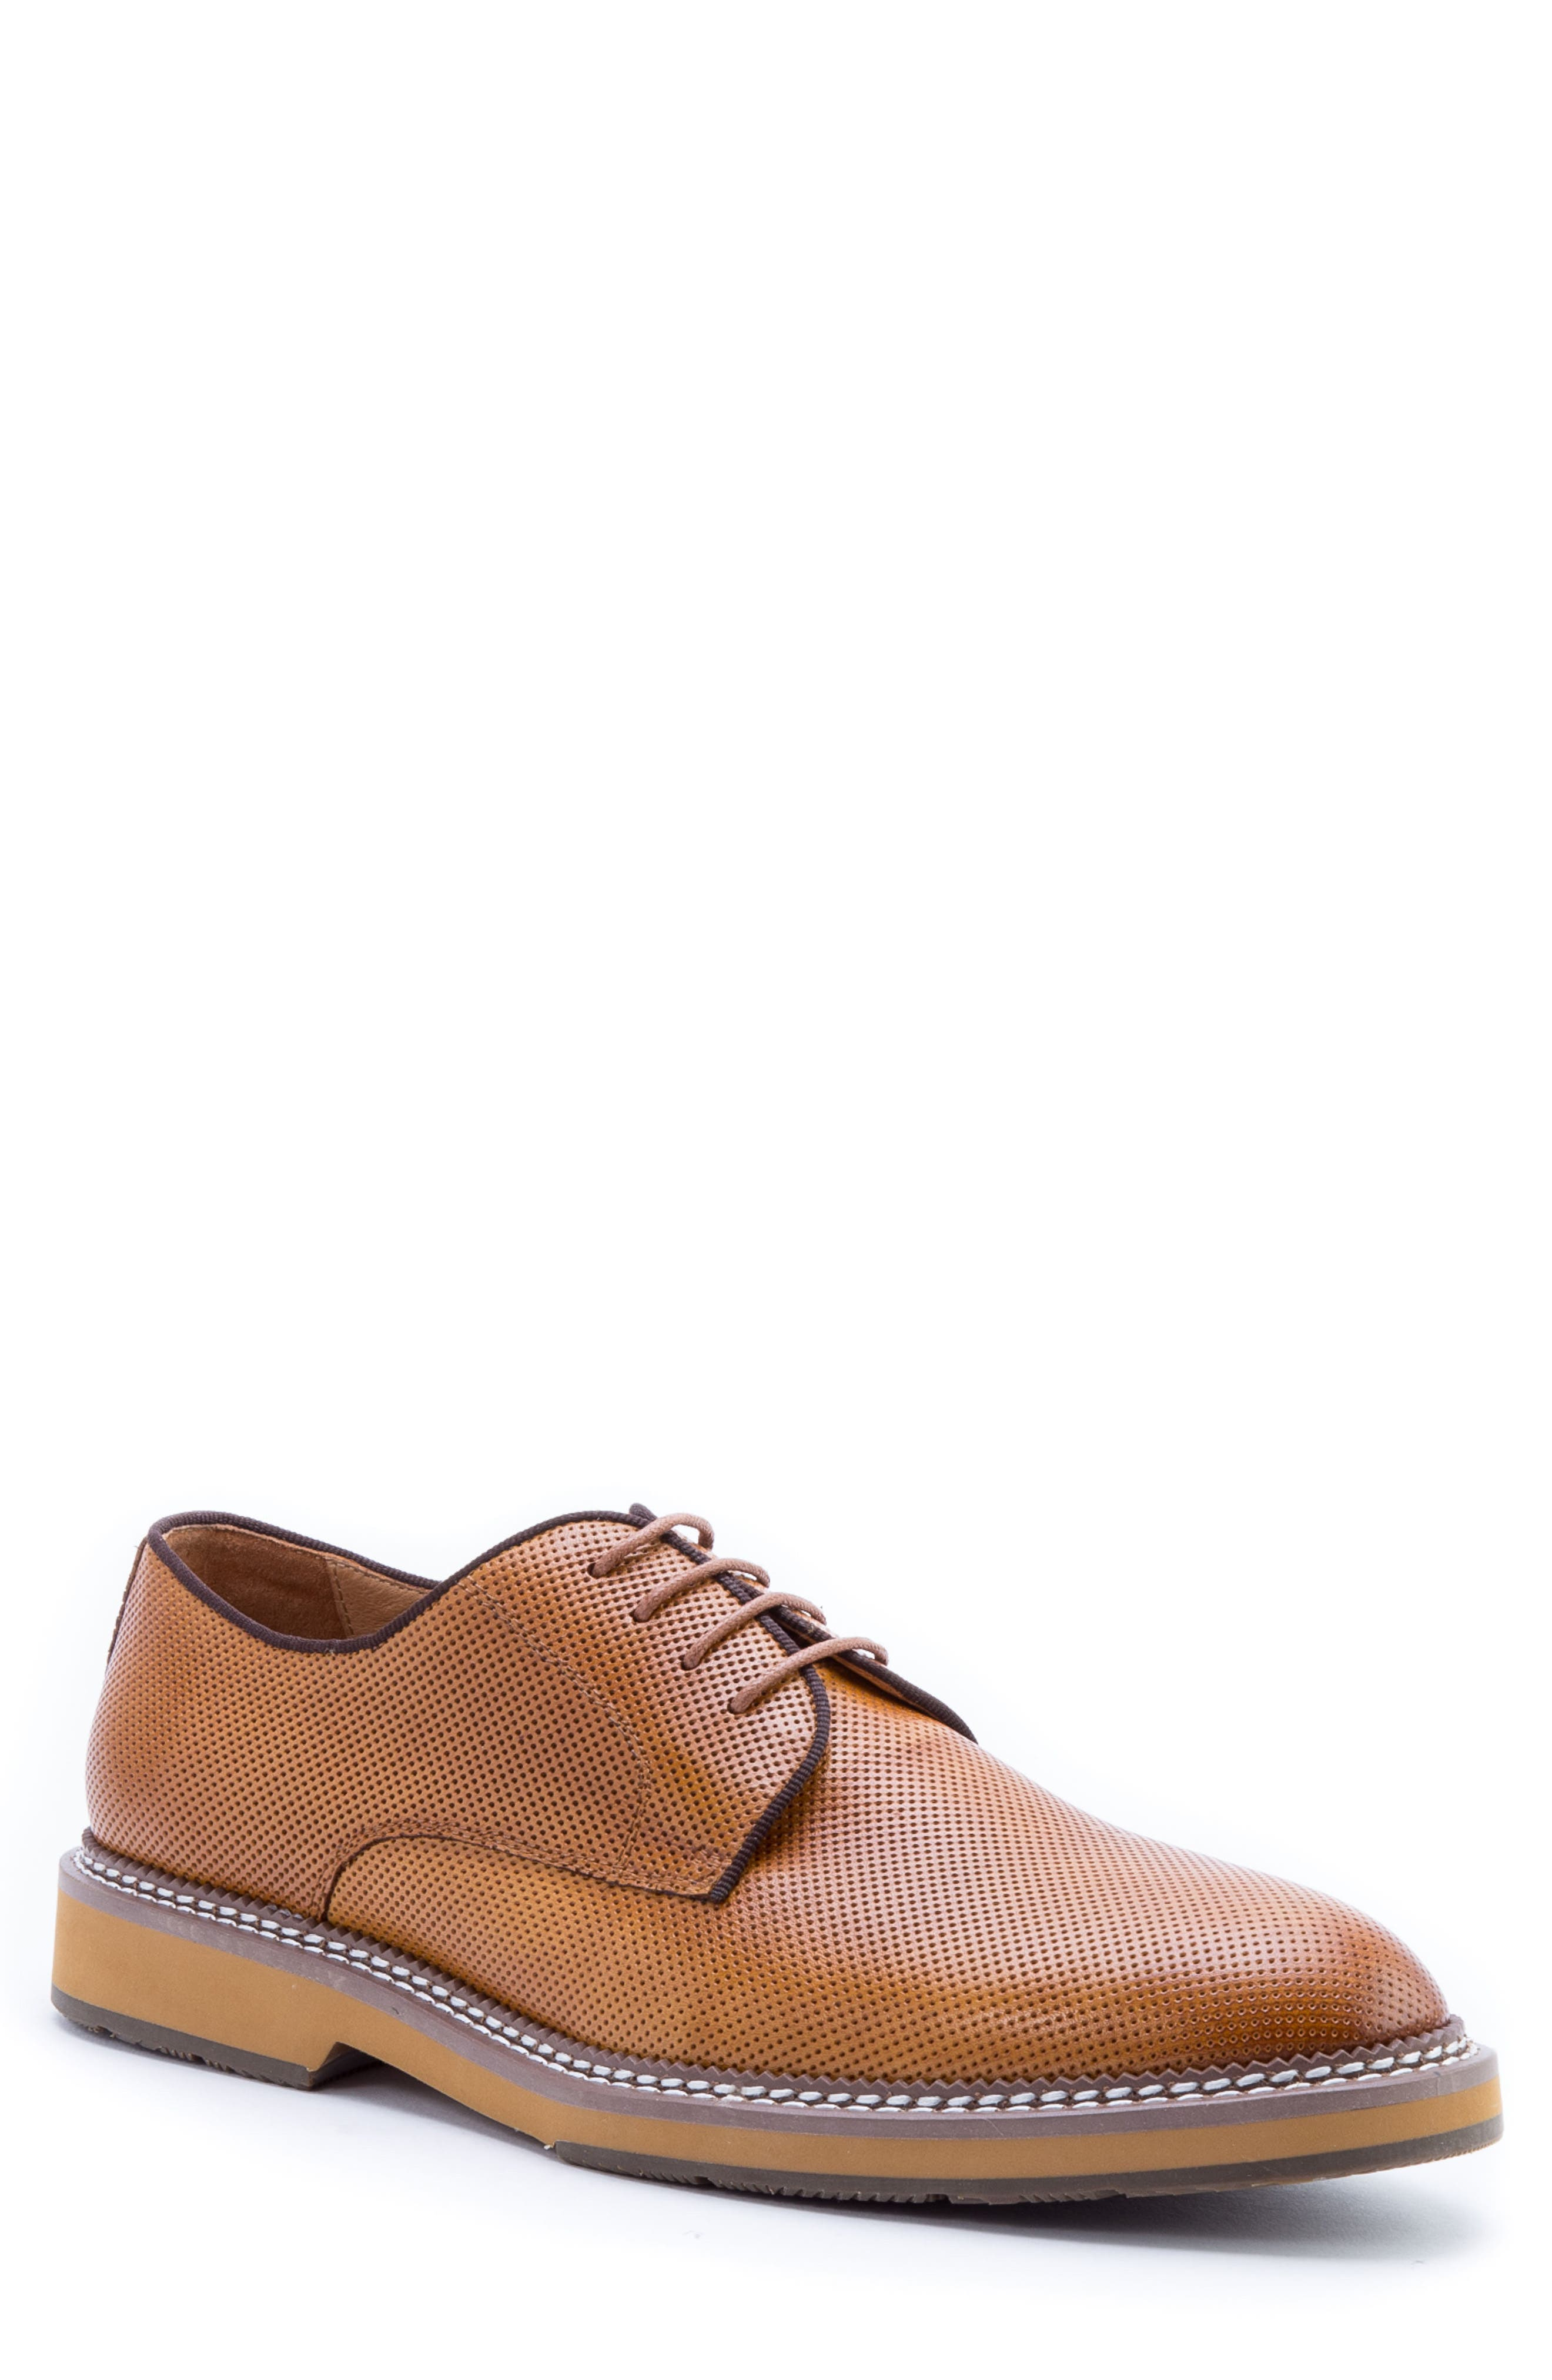 Monticello Perforated Plain Toe Derby,                             Main thumbnail 1, color,                             Cognac Leather